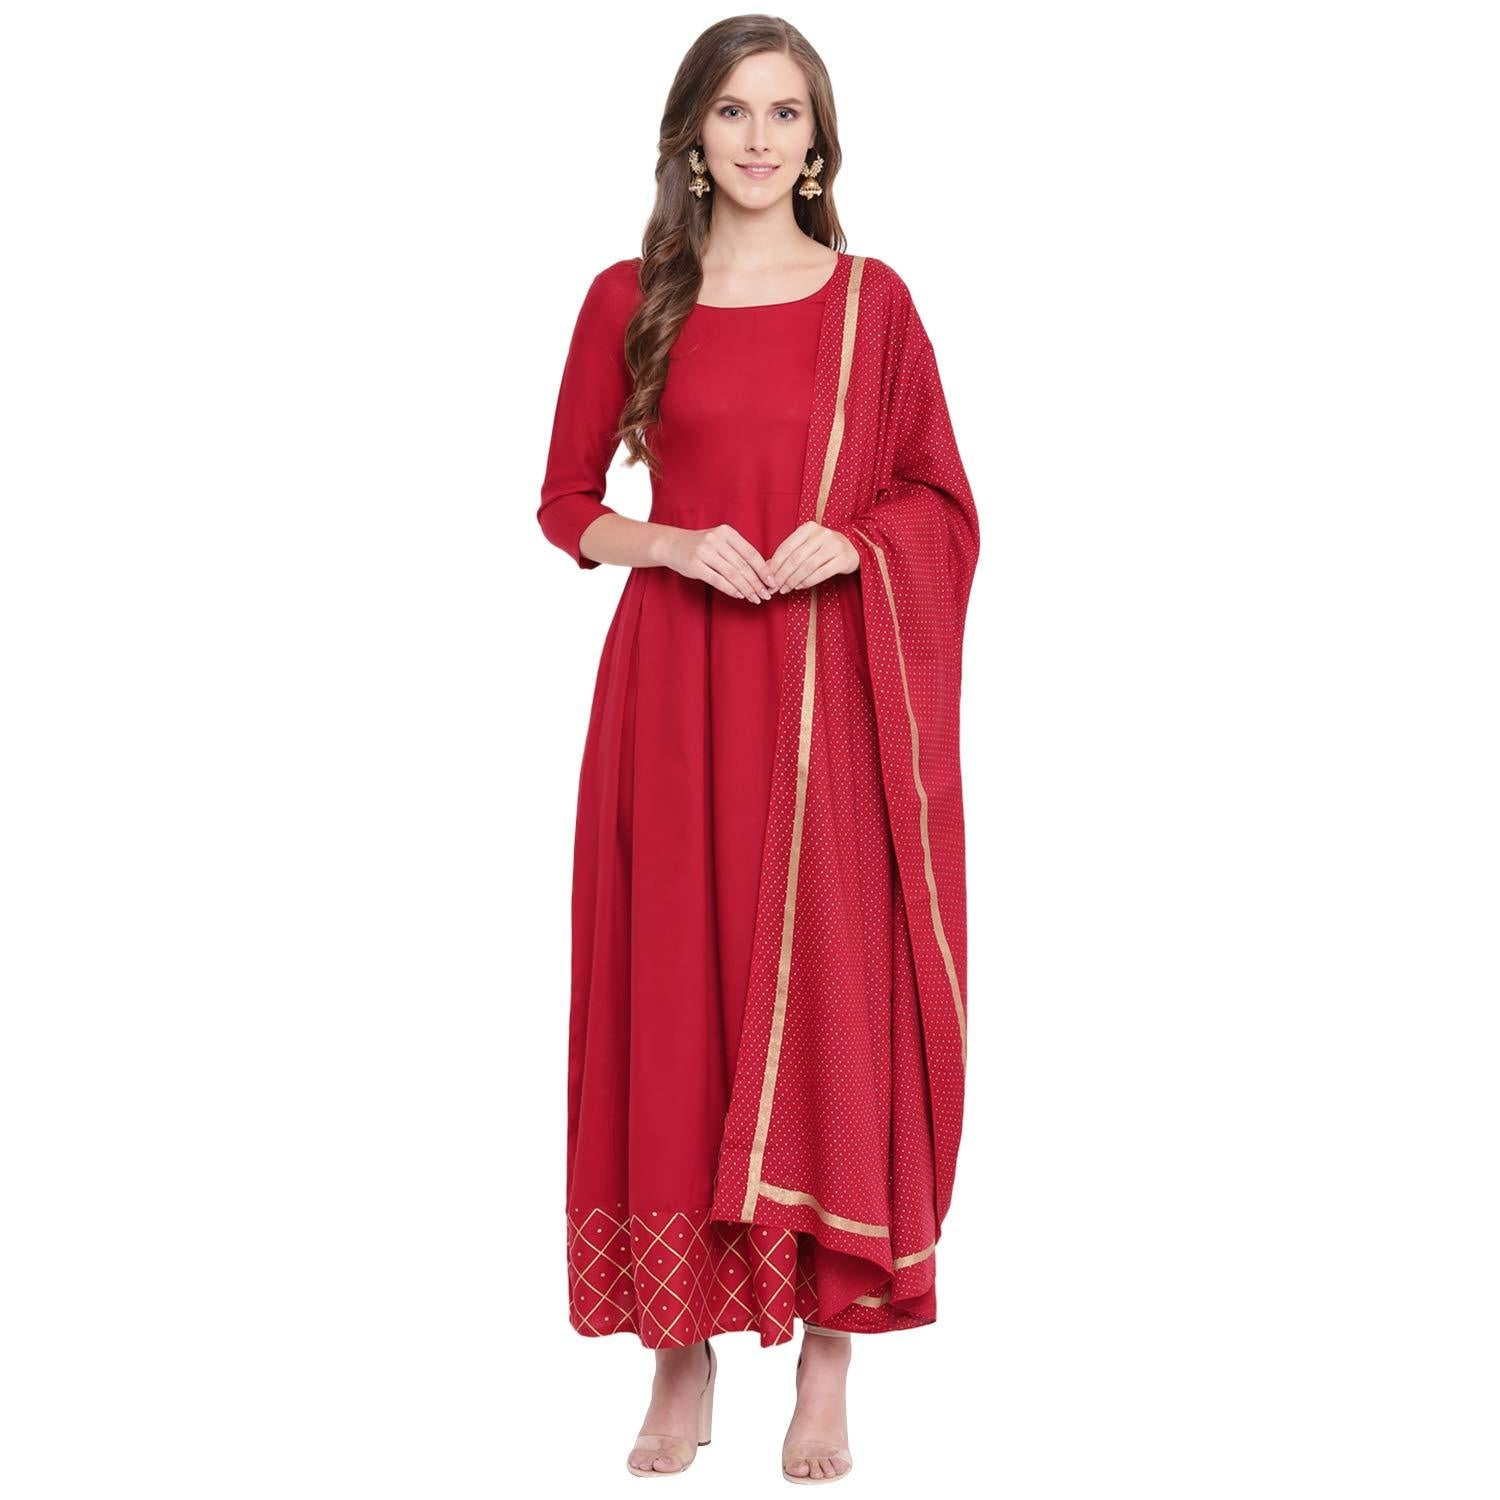 Flaray Gold Printed Rayon Flared Kurta Dupatta Set (Maroon)